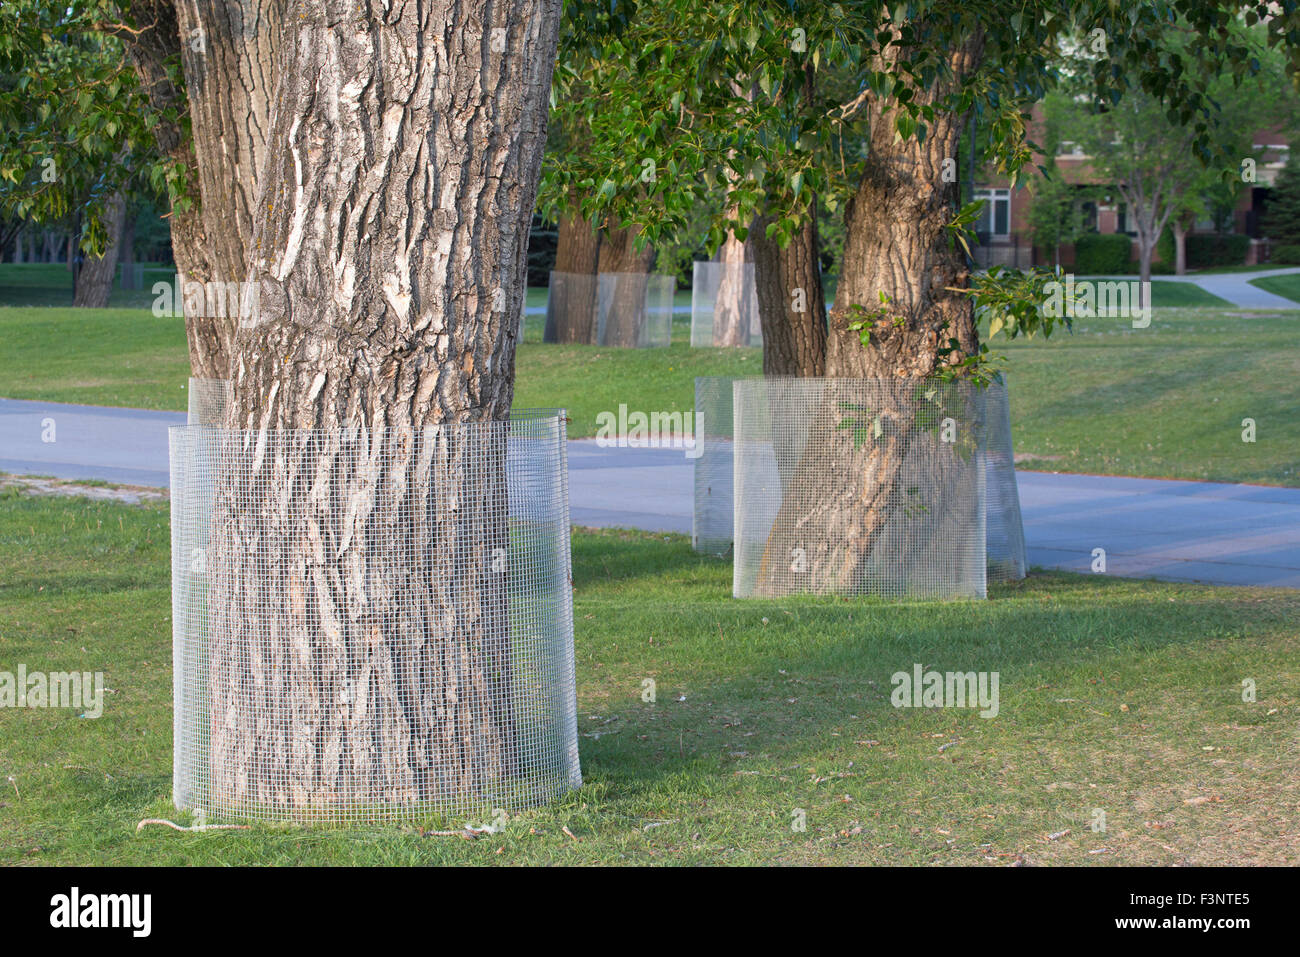 Balsam Poplar trees (Populus balsamifera) wrapped in wire for protection from beavers in city park - Stock Image